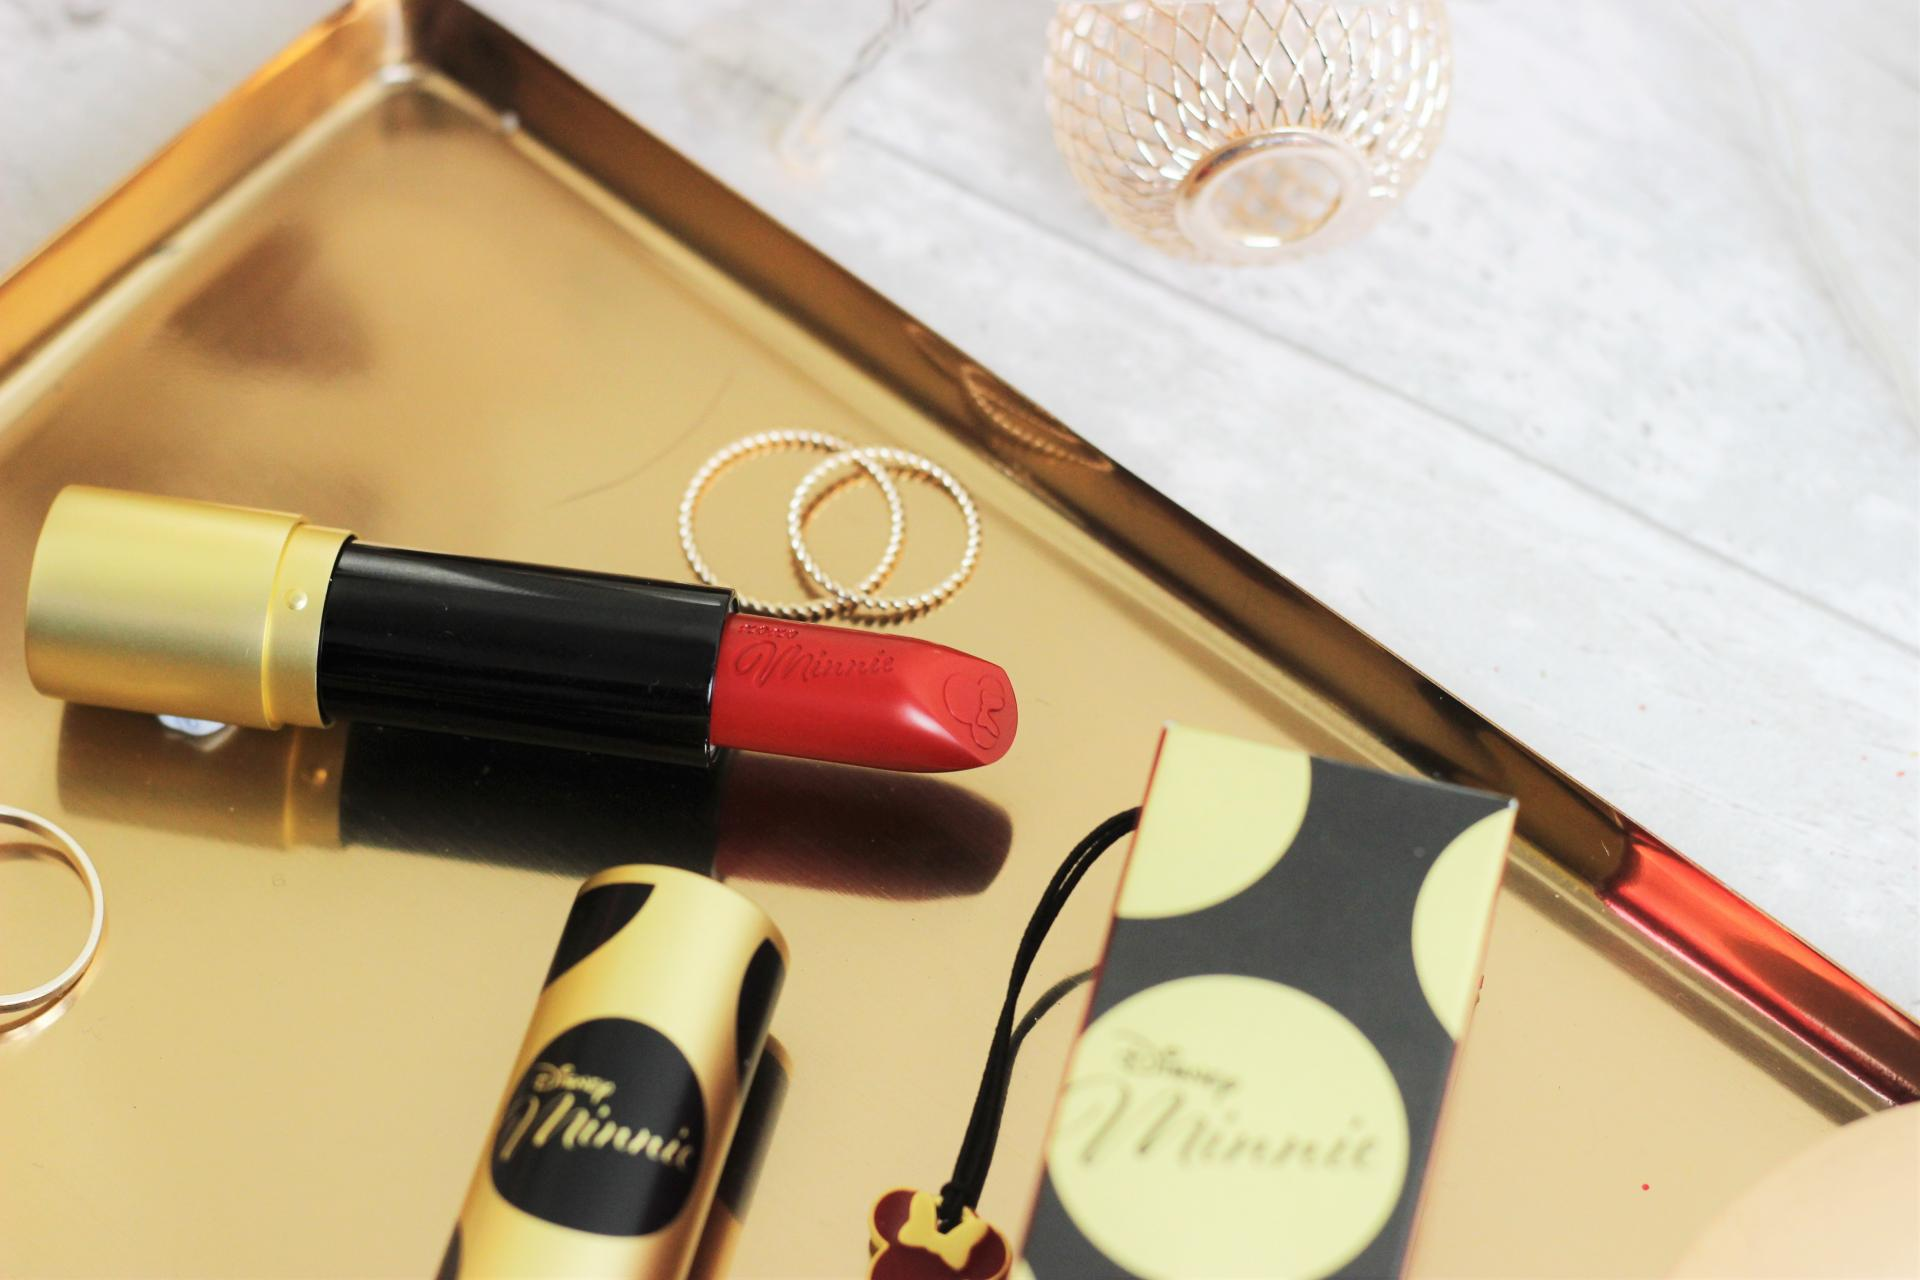 Sephora Disney Minnie Red Lipstick